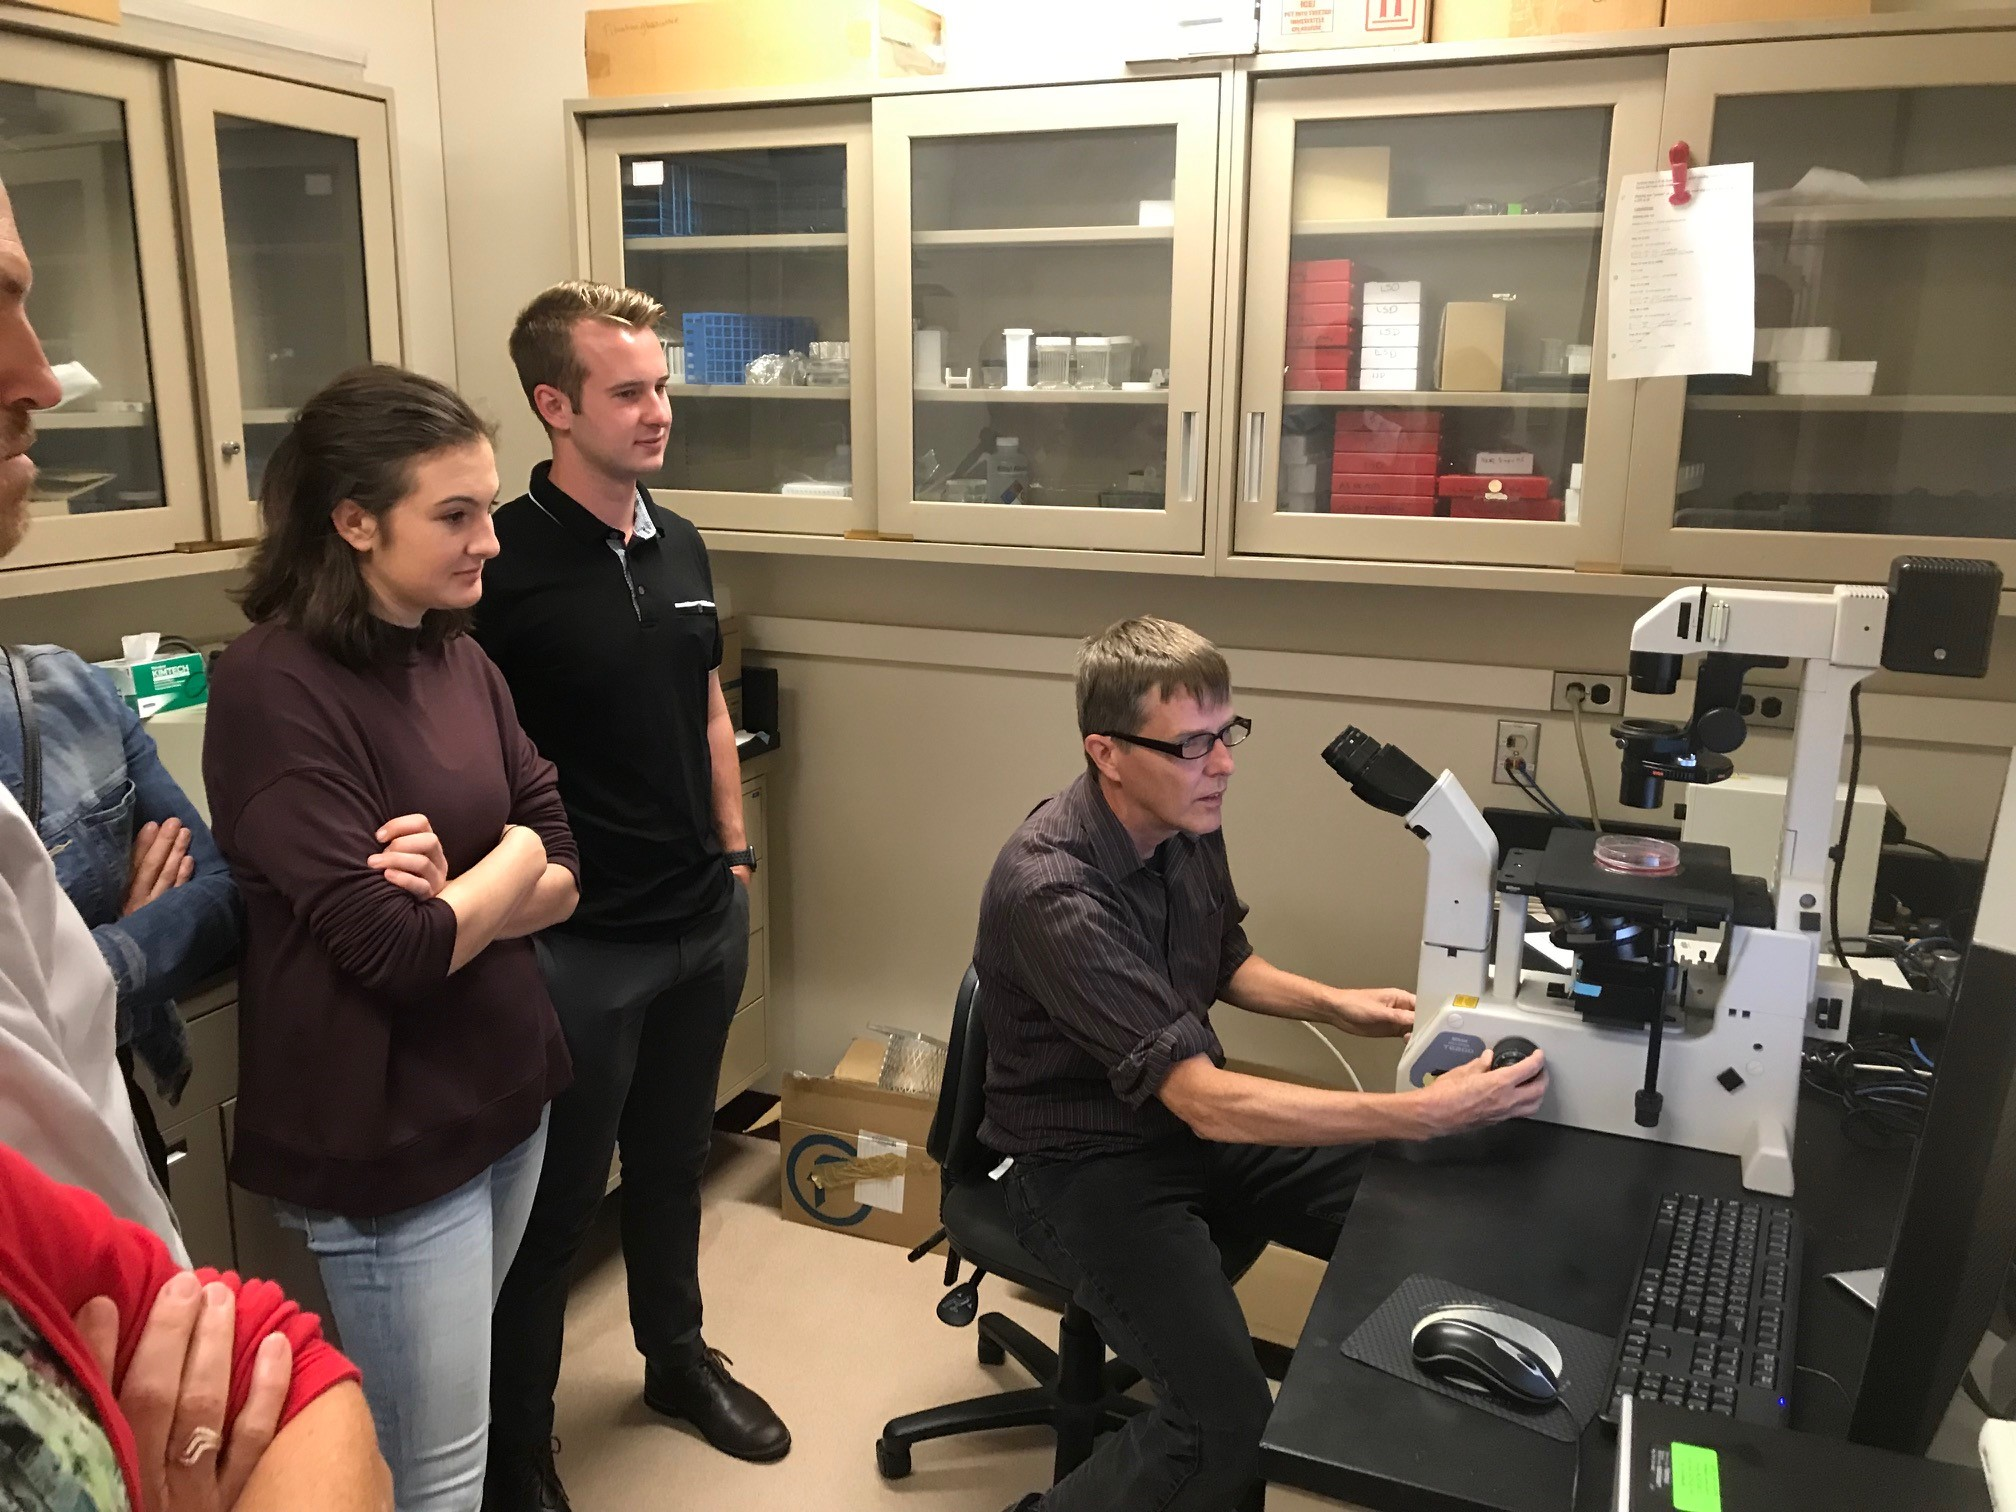 Dr. Tim Starr demonstrated how cancer cells are identified through a high powered microscope in his lab.